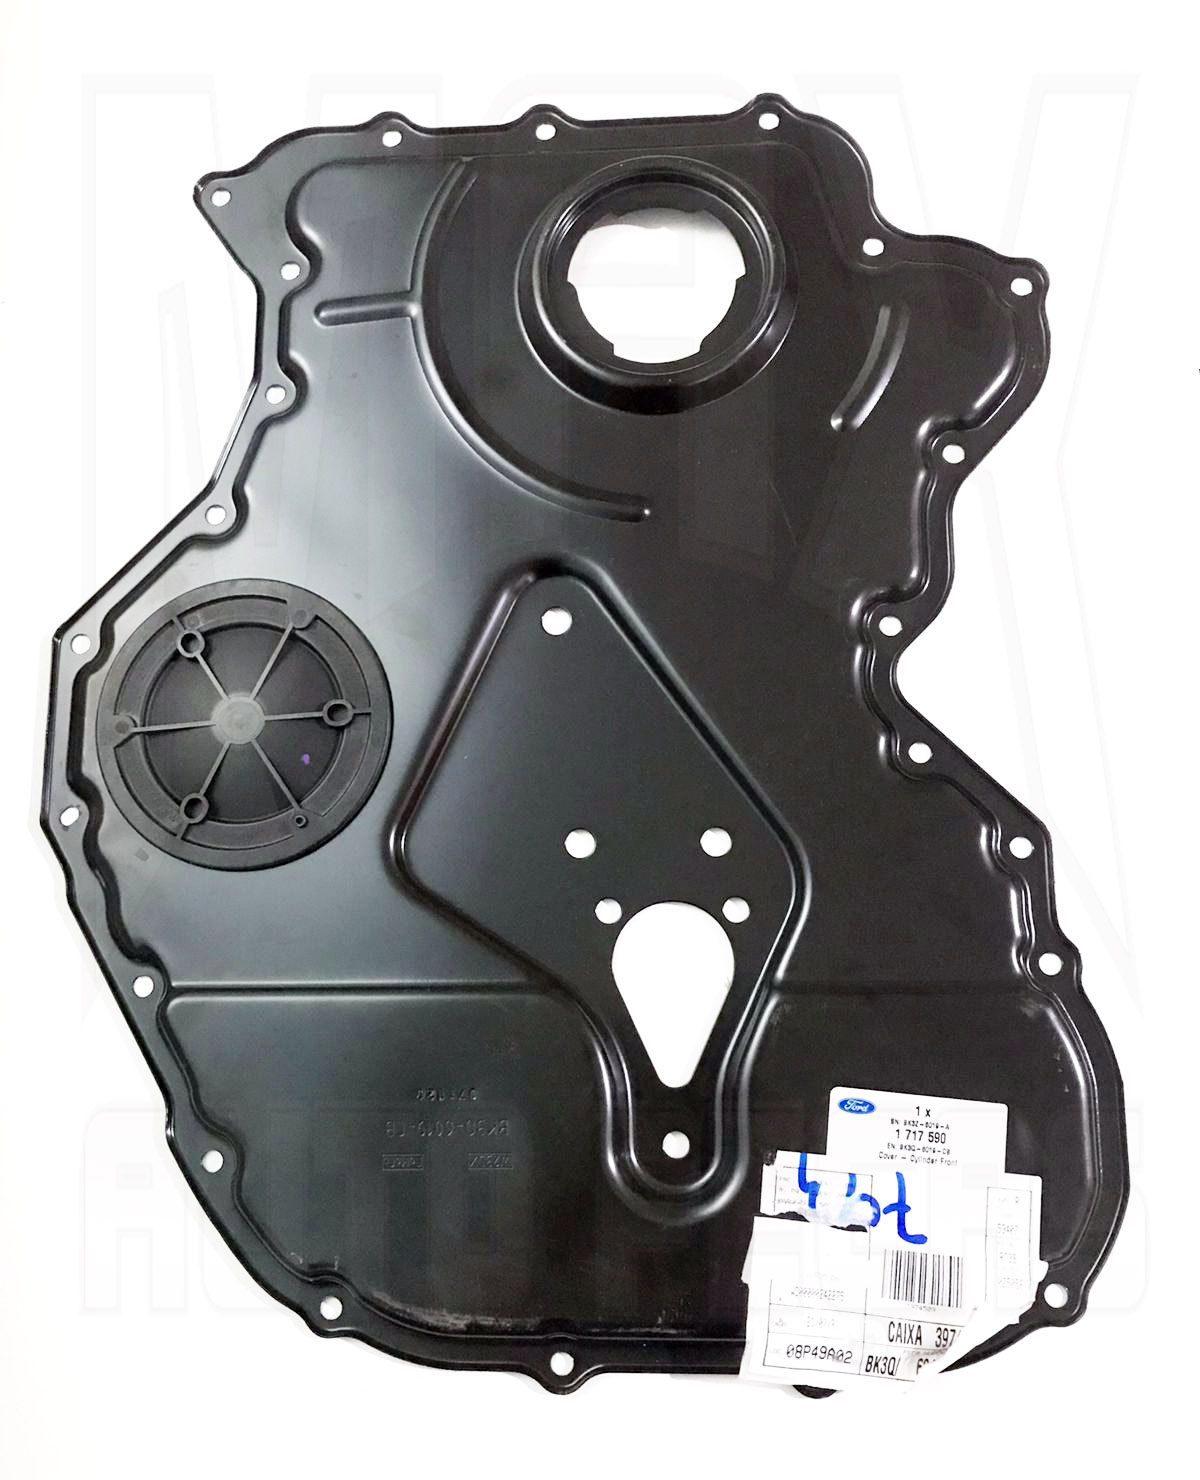 Tampa Frontal Do Bloco Cilindros Ranger 3.2 2012 2013/... Original Ford